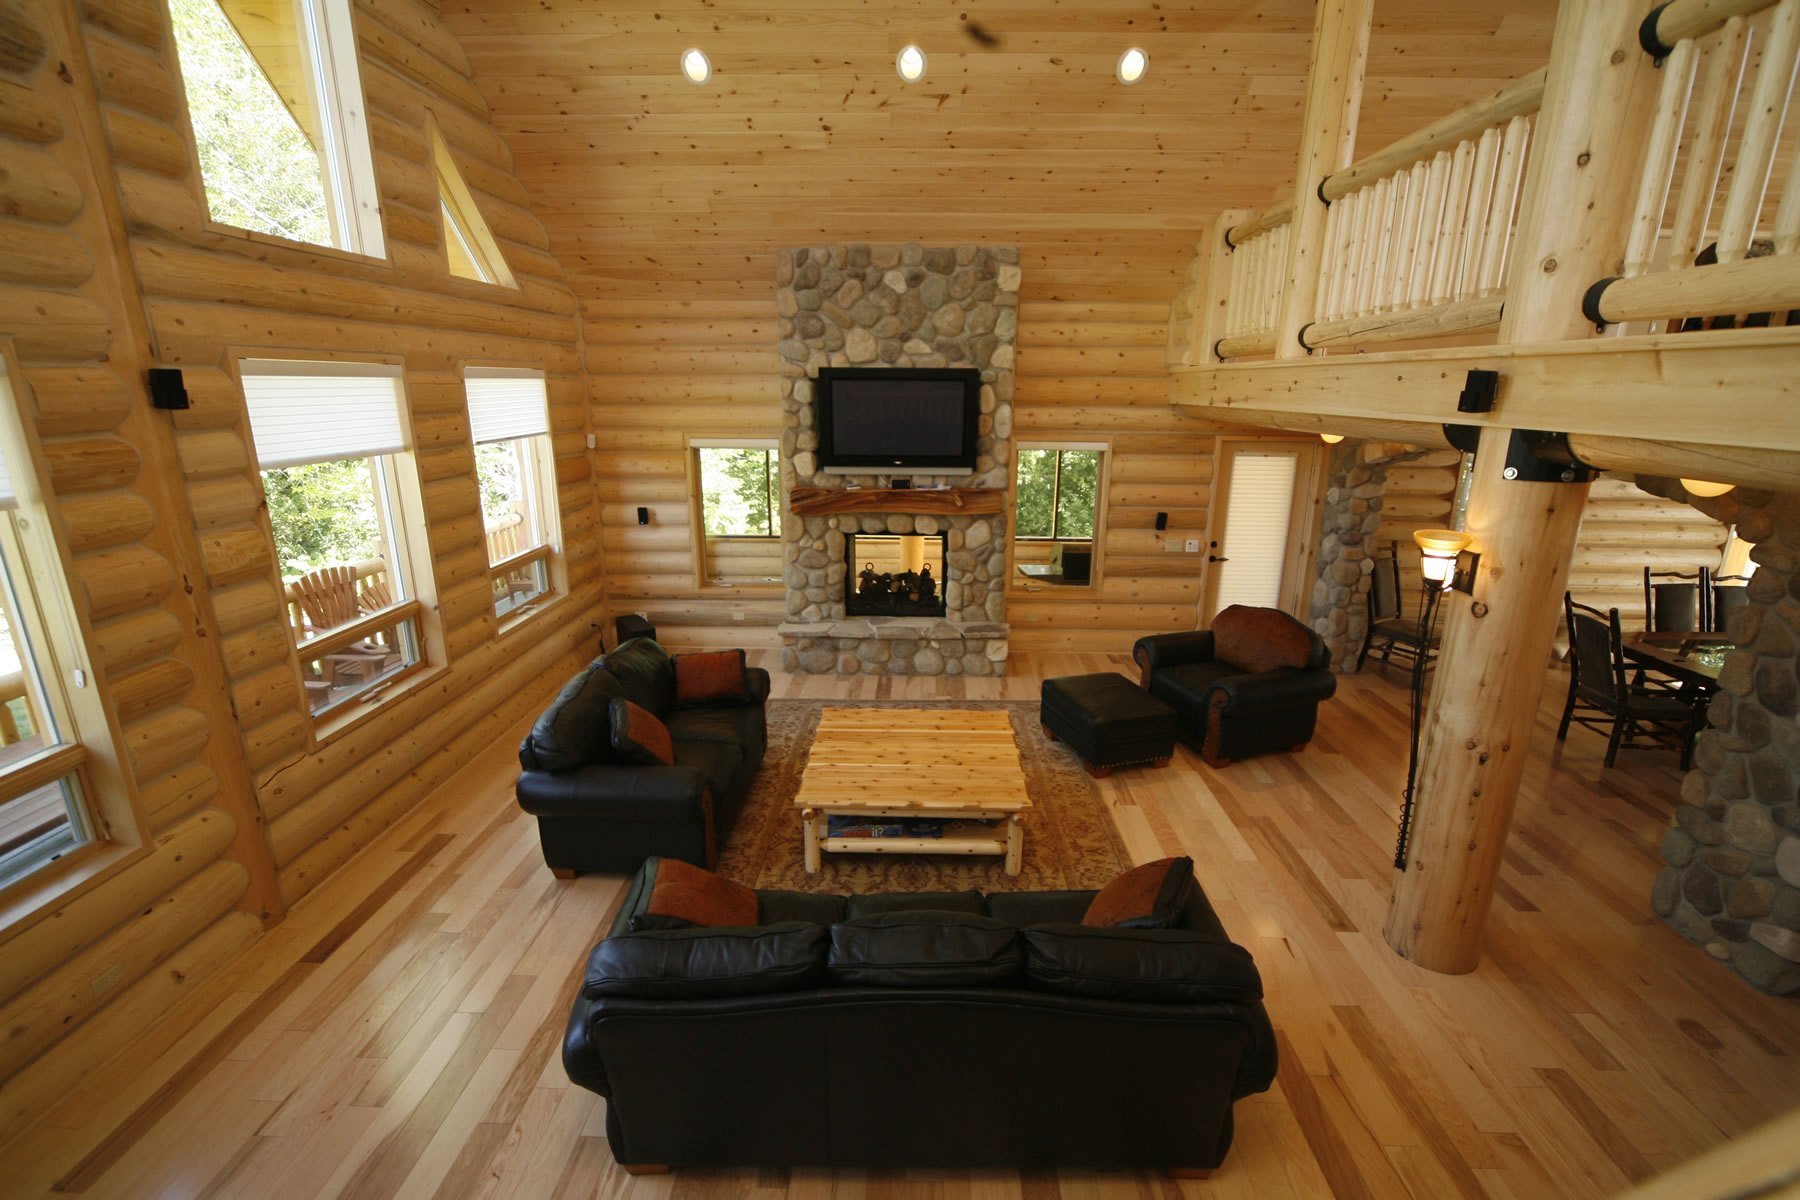 Whisper creek log homes oke woodsmith building systems inc for Creek house